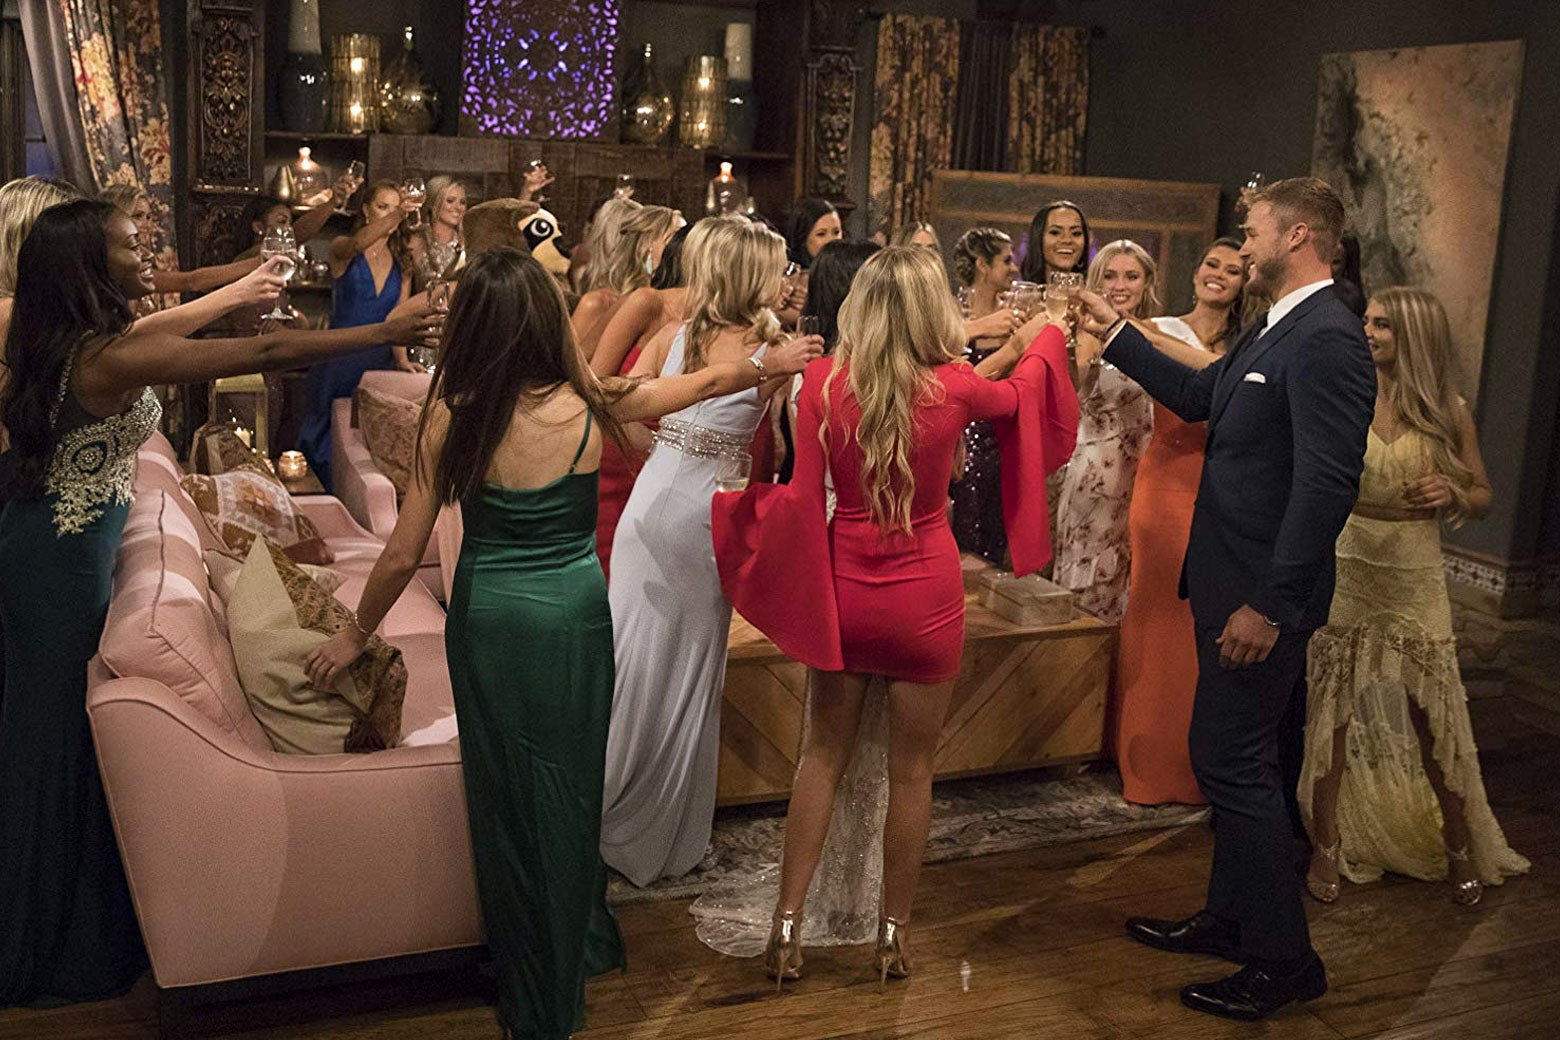 The women of this season of The Bachelor with Colton Underwood.